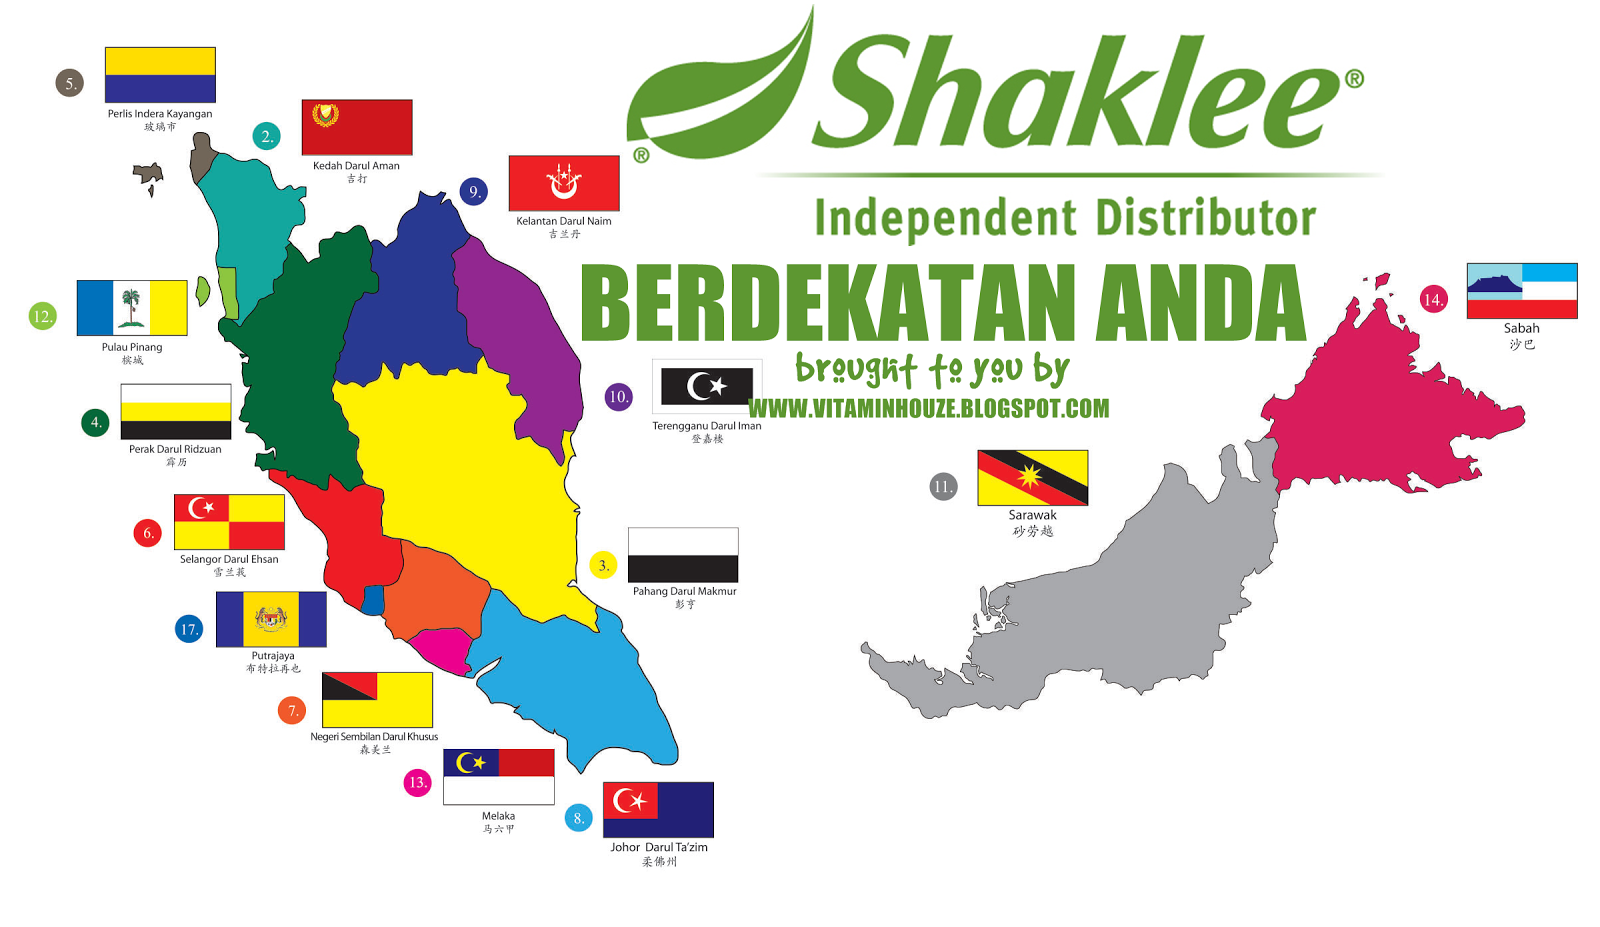 SHAKLEE DISTRIBUTOR NEAR YOU